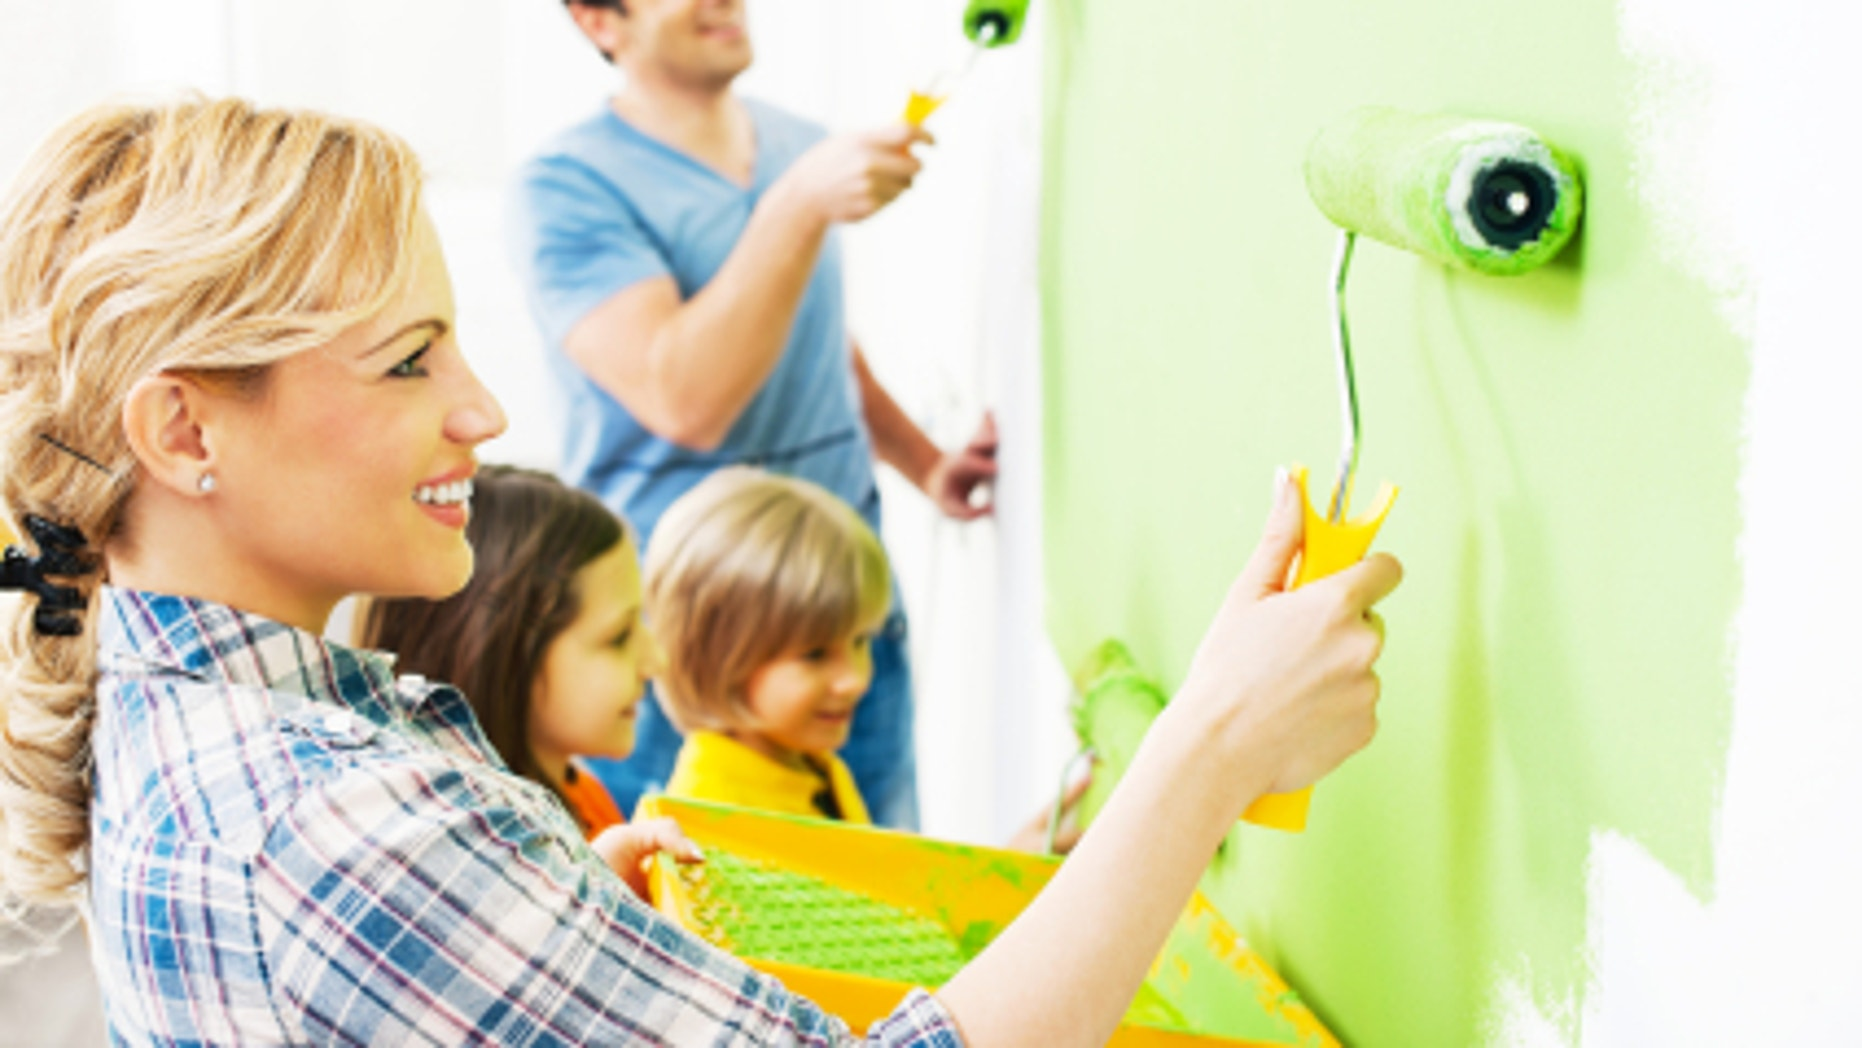 Portrait of a happy family holding paint rollers and painting wall in green.[url=http://www.istockphoto.com/search/lightbox/9786778][img]http://dl.dropbox.com/u/40117171/family.jpg[/img][/url]